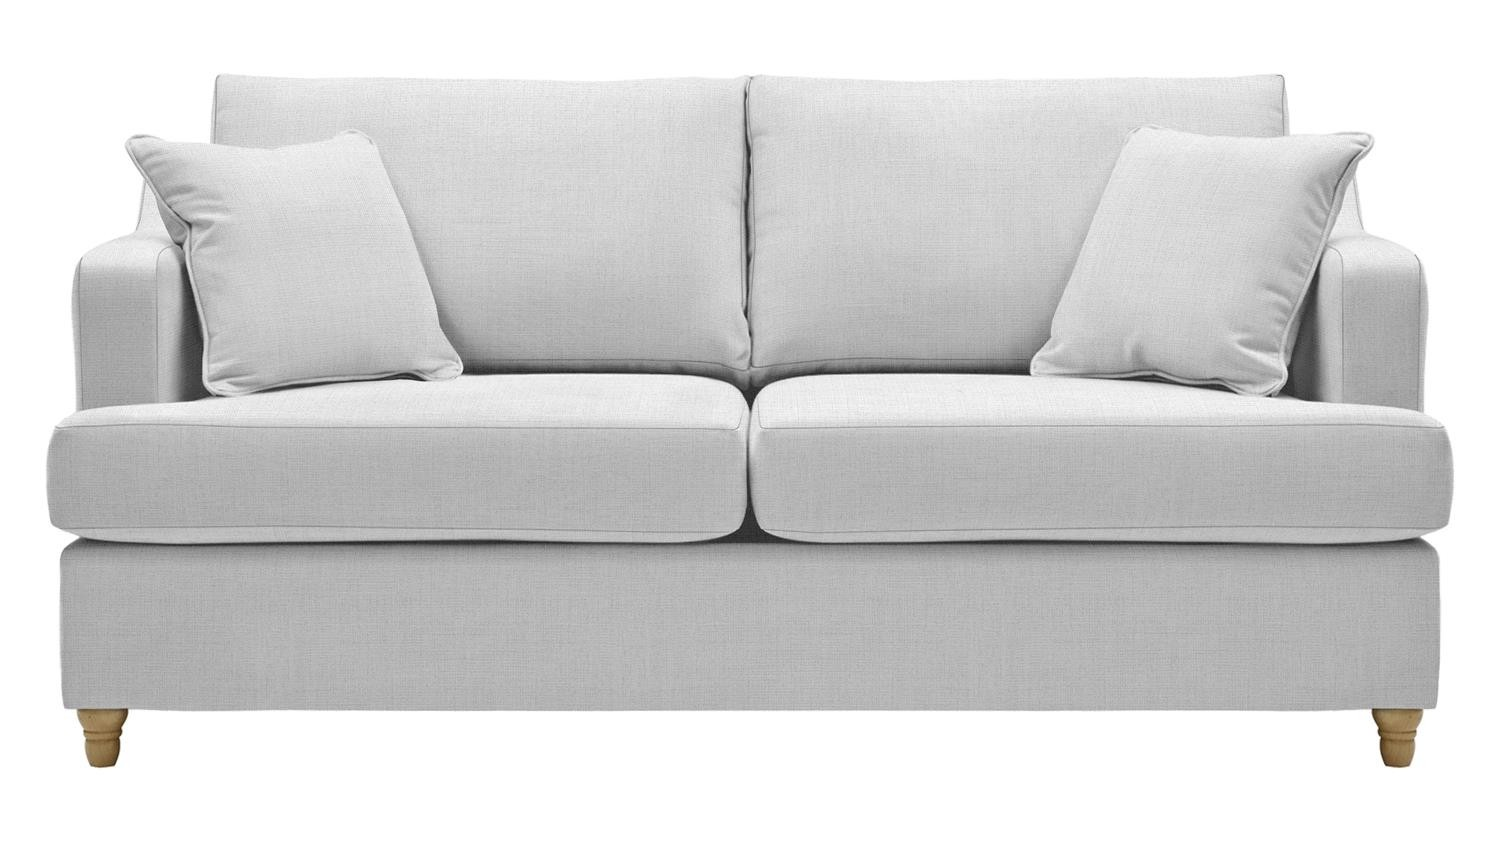 The Atworth 4 Seater Sofa Bed